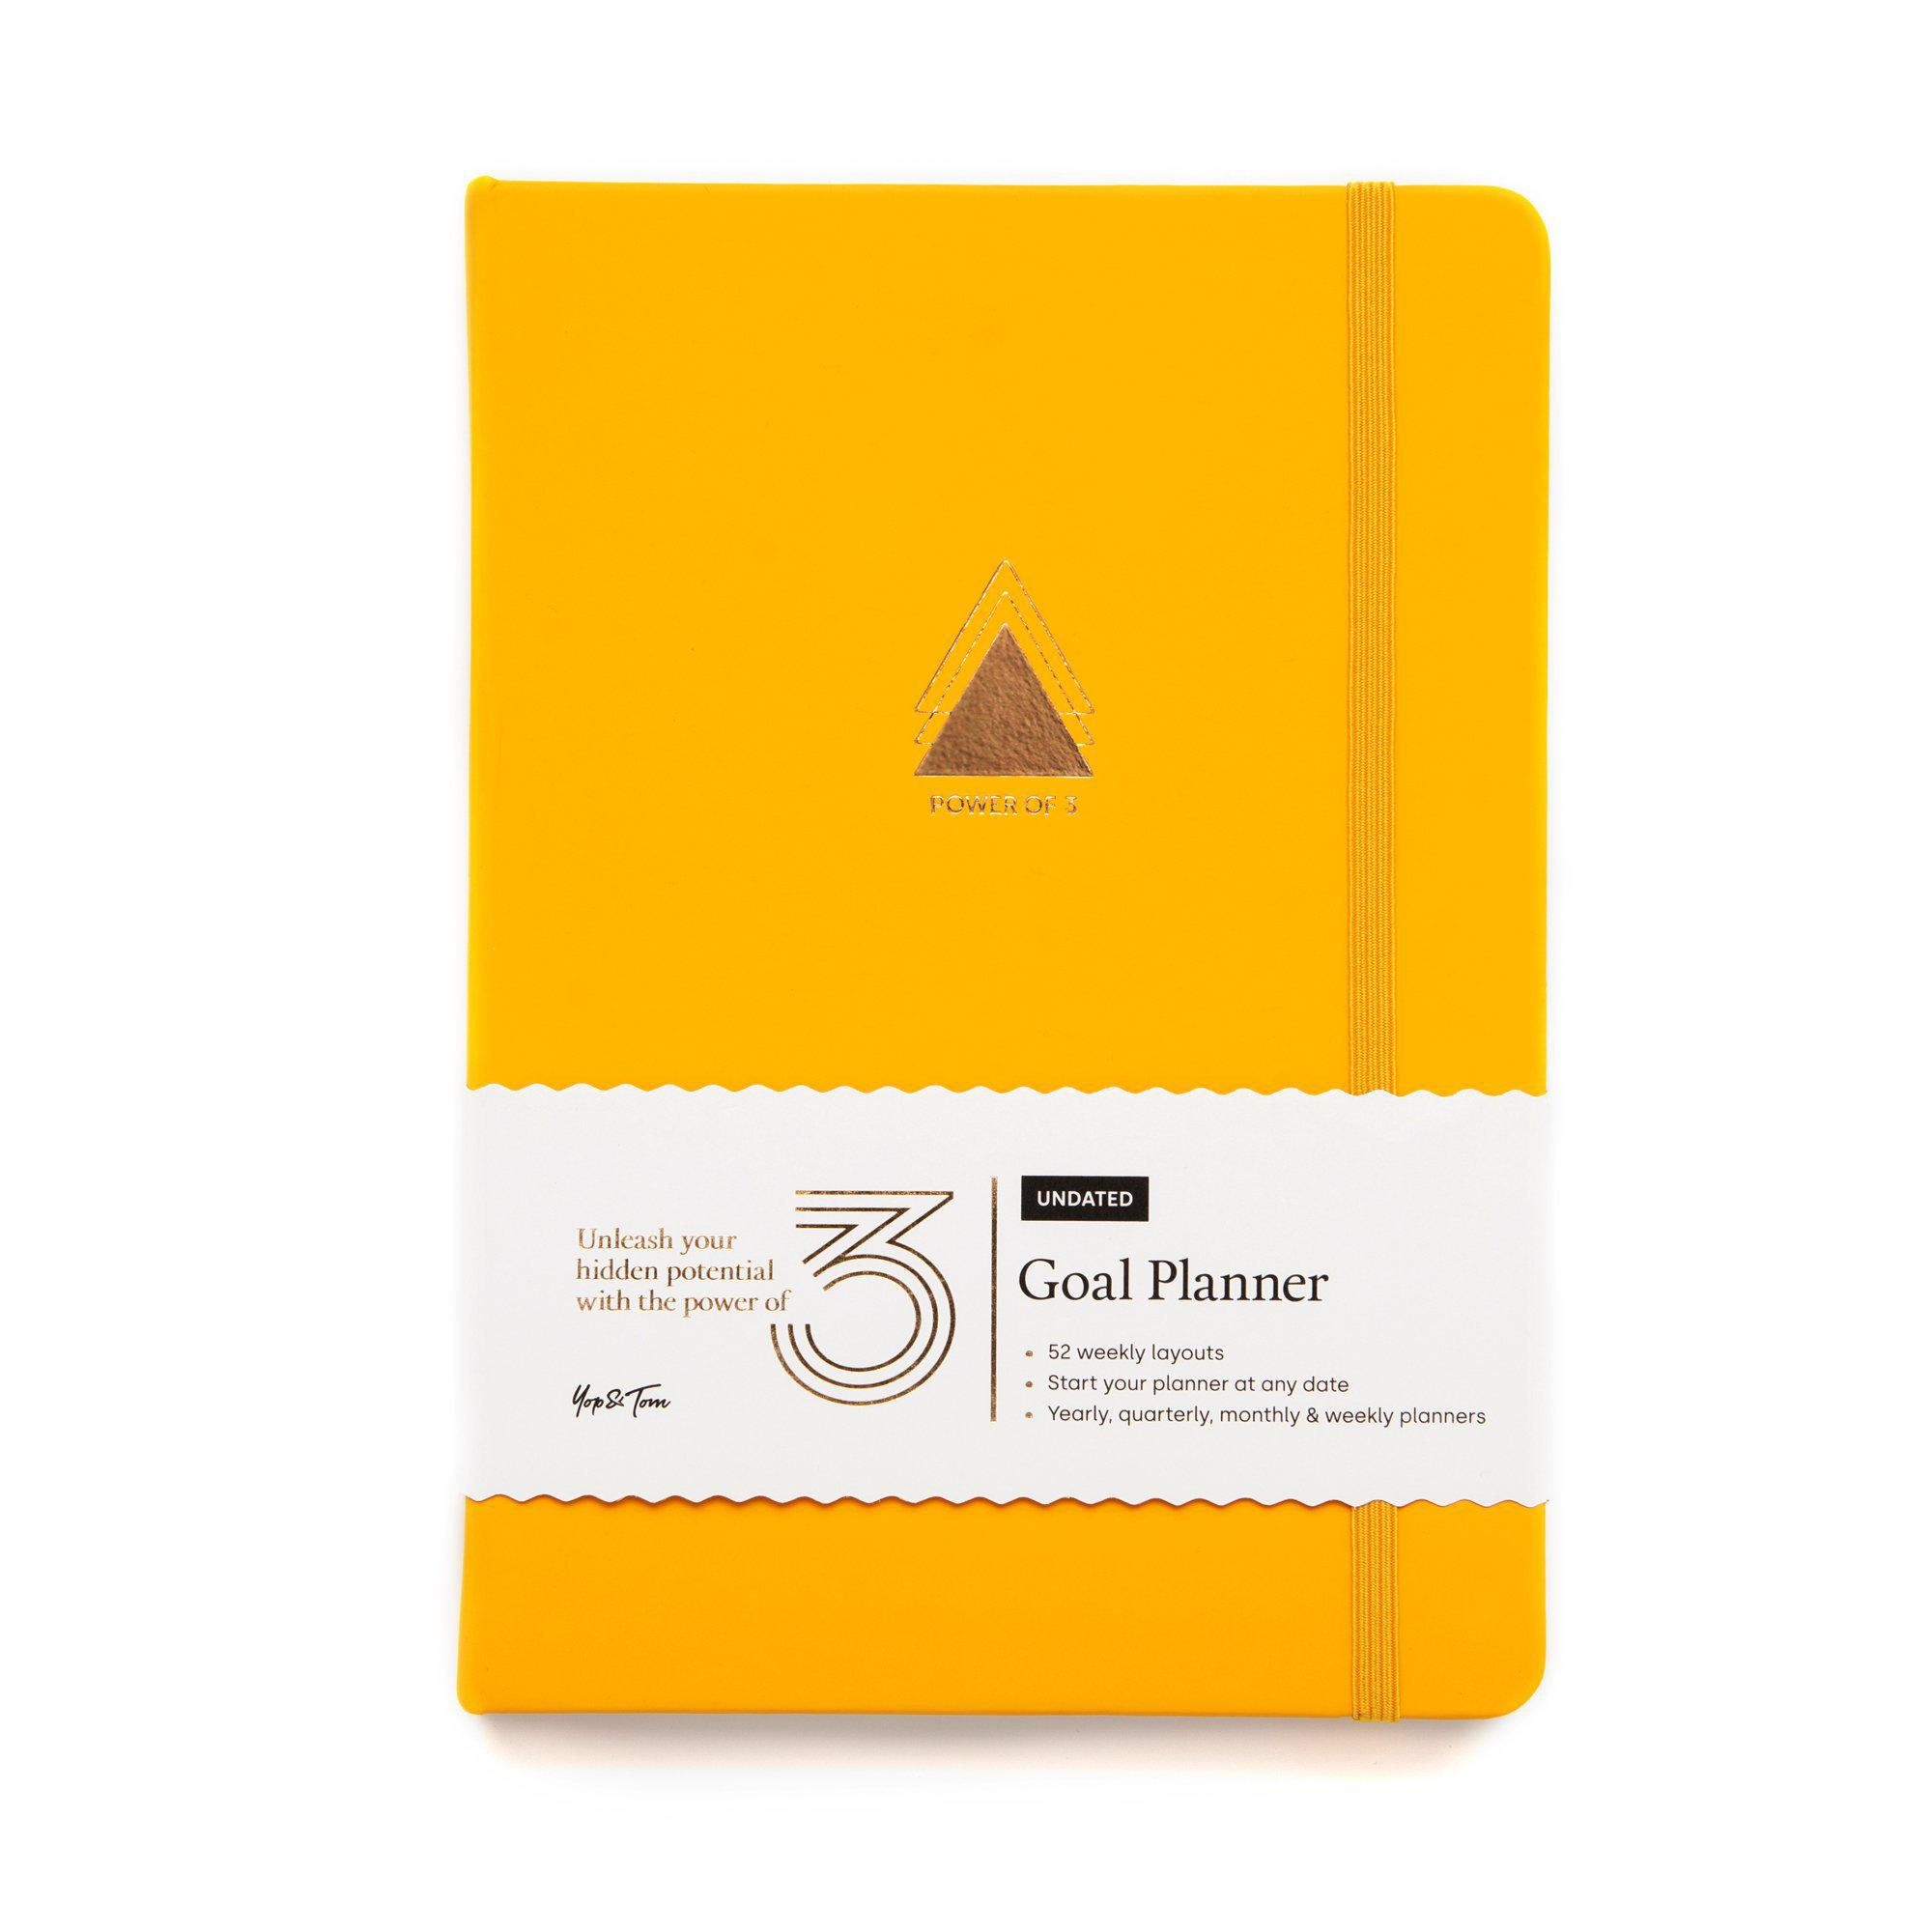 Power of 3 Undated Goal Planner - Sunshine Yellow